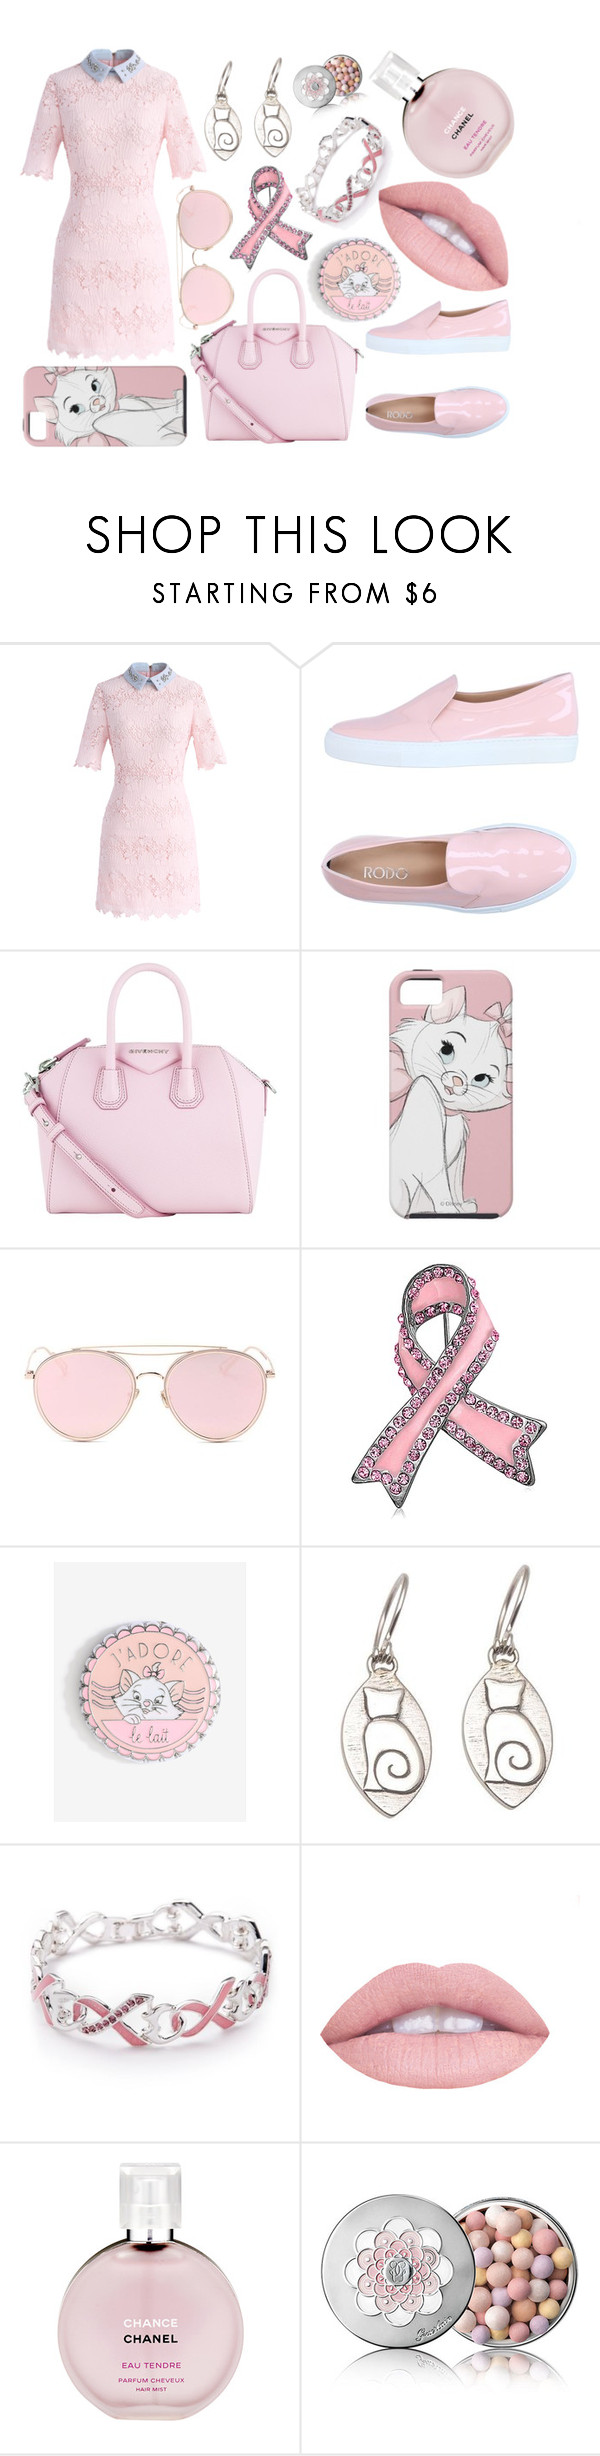 """Crazy pink cat lady"" by london-lo on Polyvore featuring Chicwish, Rodo, Givenchy, LMNT, Bling Jewelry, NOVICA, Napier, L.A. Girl, Chanel and Guerlain"